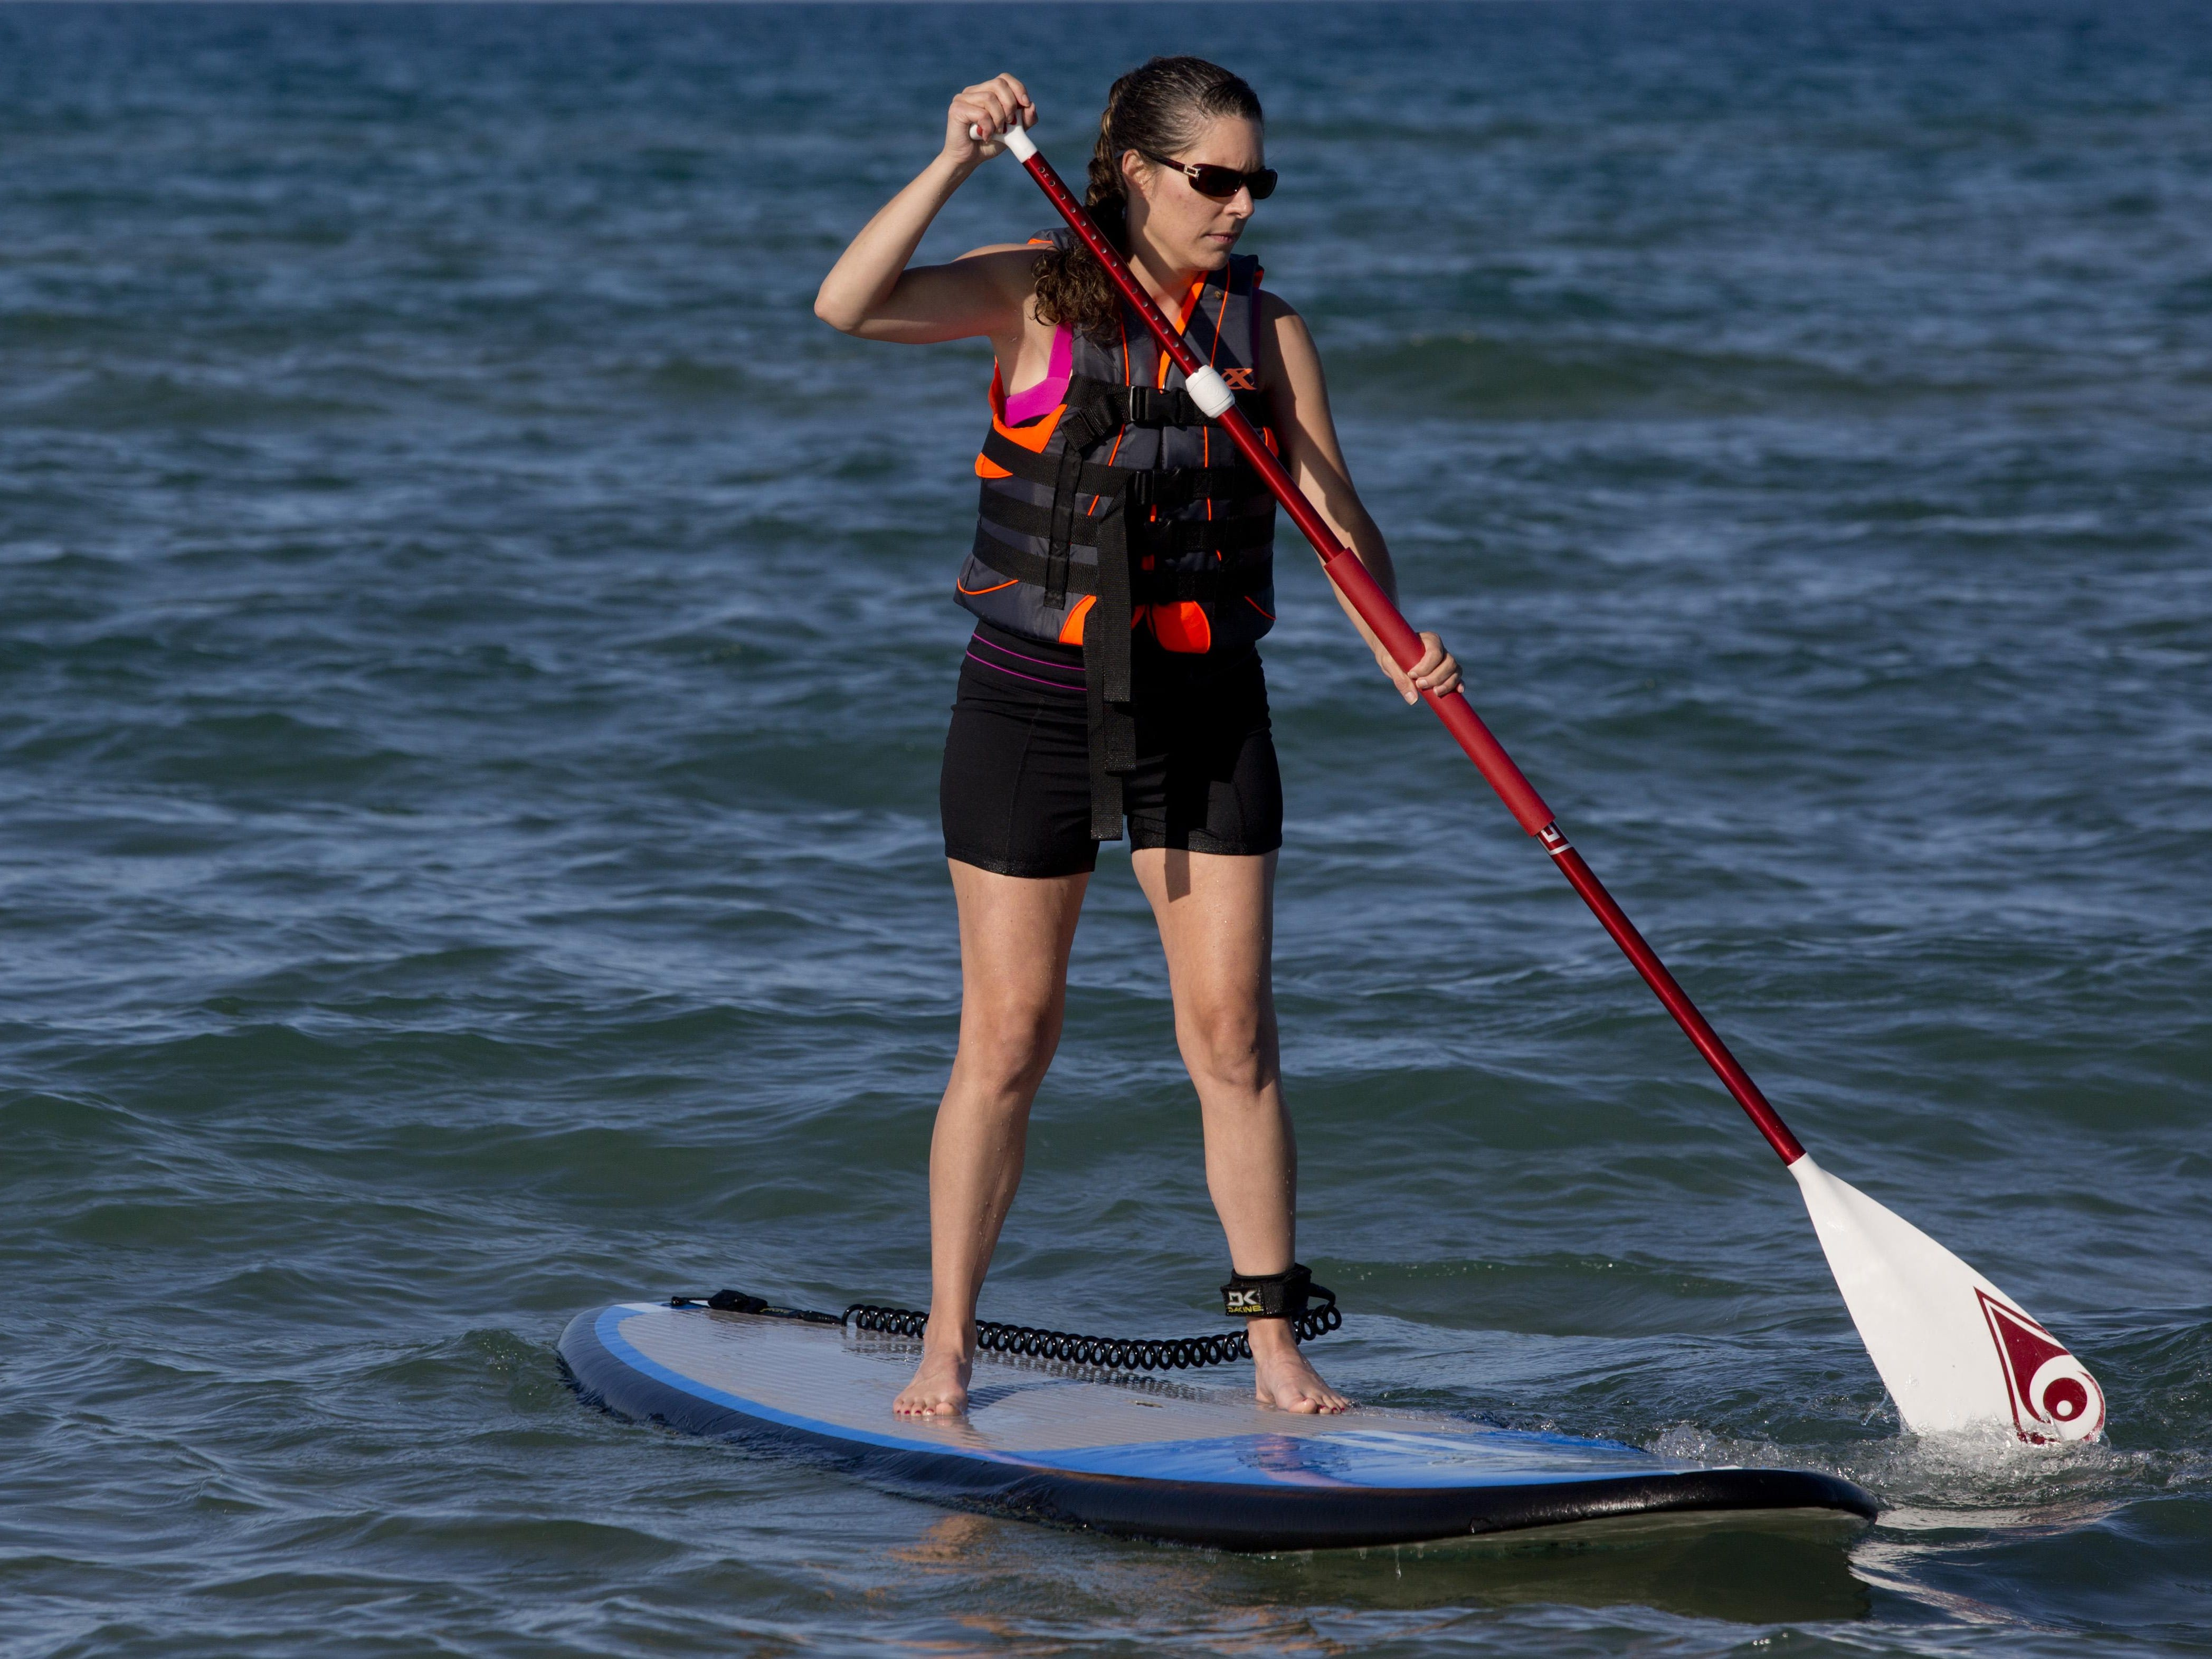 Julie Wiley, of Port Huron, paddles during a stand up paddle board class Wednesday, July 22, 2015 at Lakeside Beach in Port Huron.